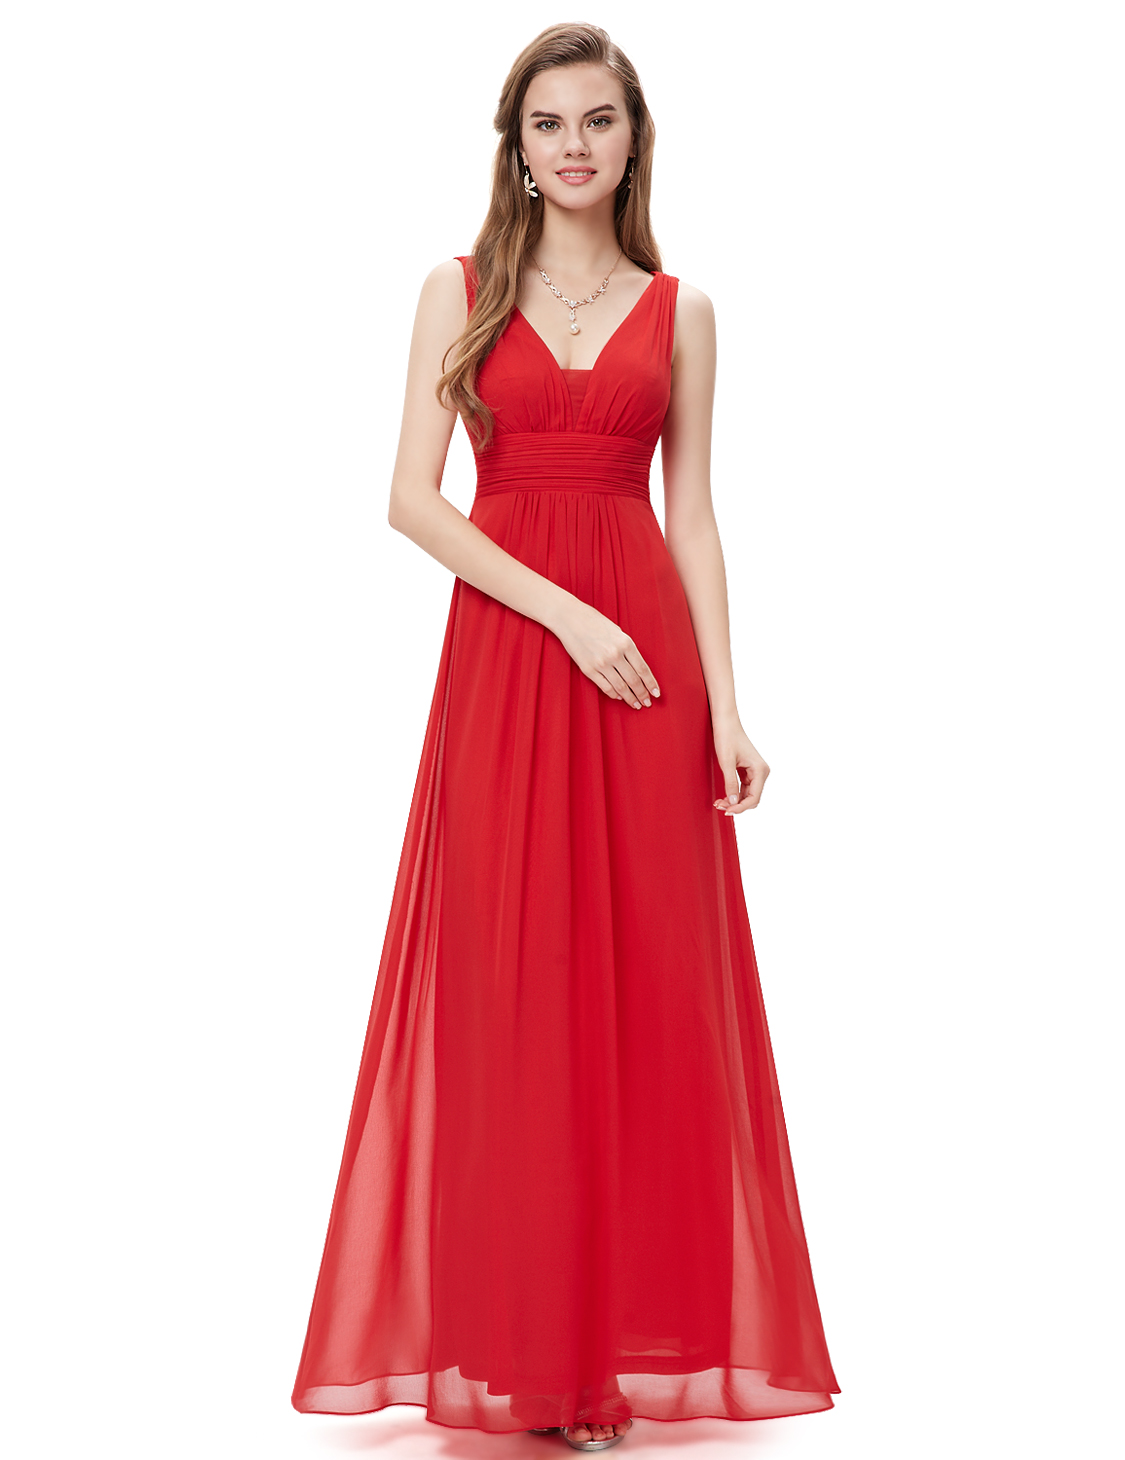 Every-pretty Hot Red Deep V-neck Bridesmaid Dresses Pleated Cocktail Gown 08110